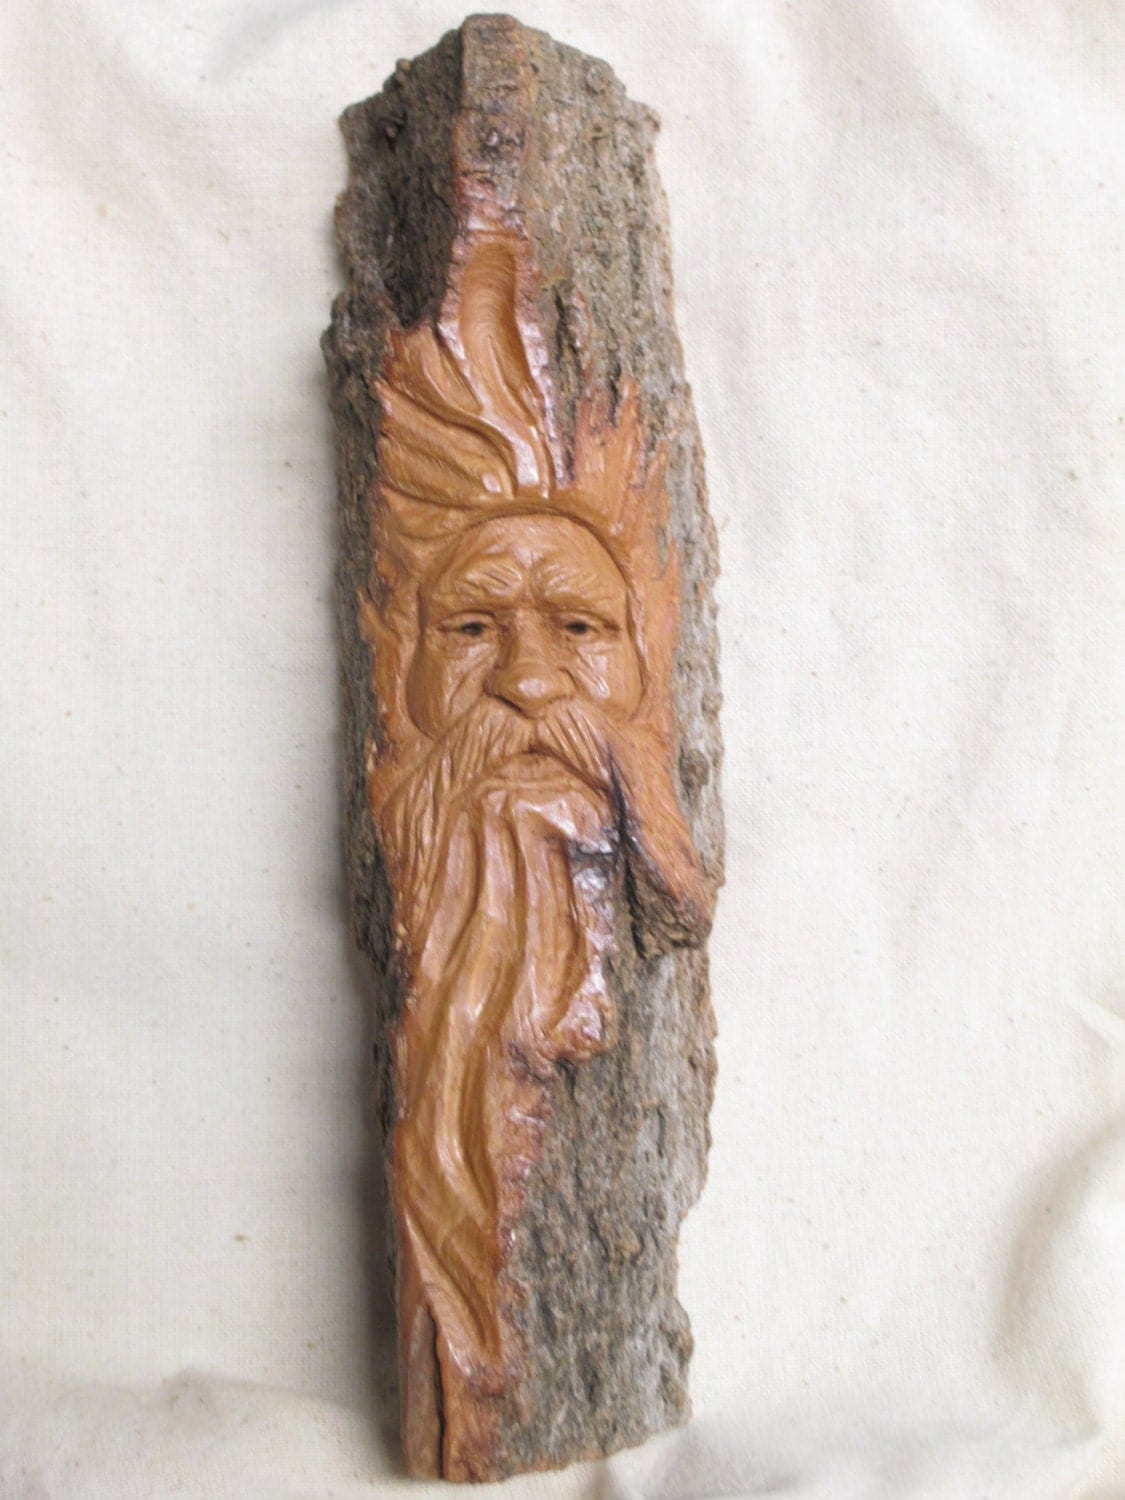 Cottonwood bark wood spirit ooak hand carved in missouri